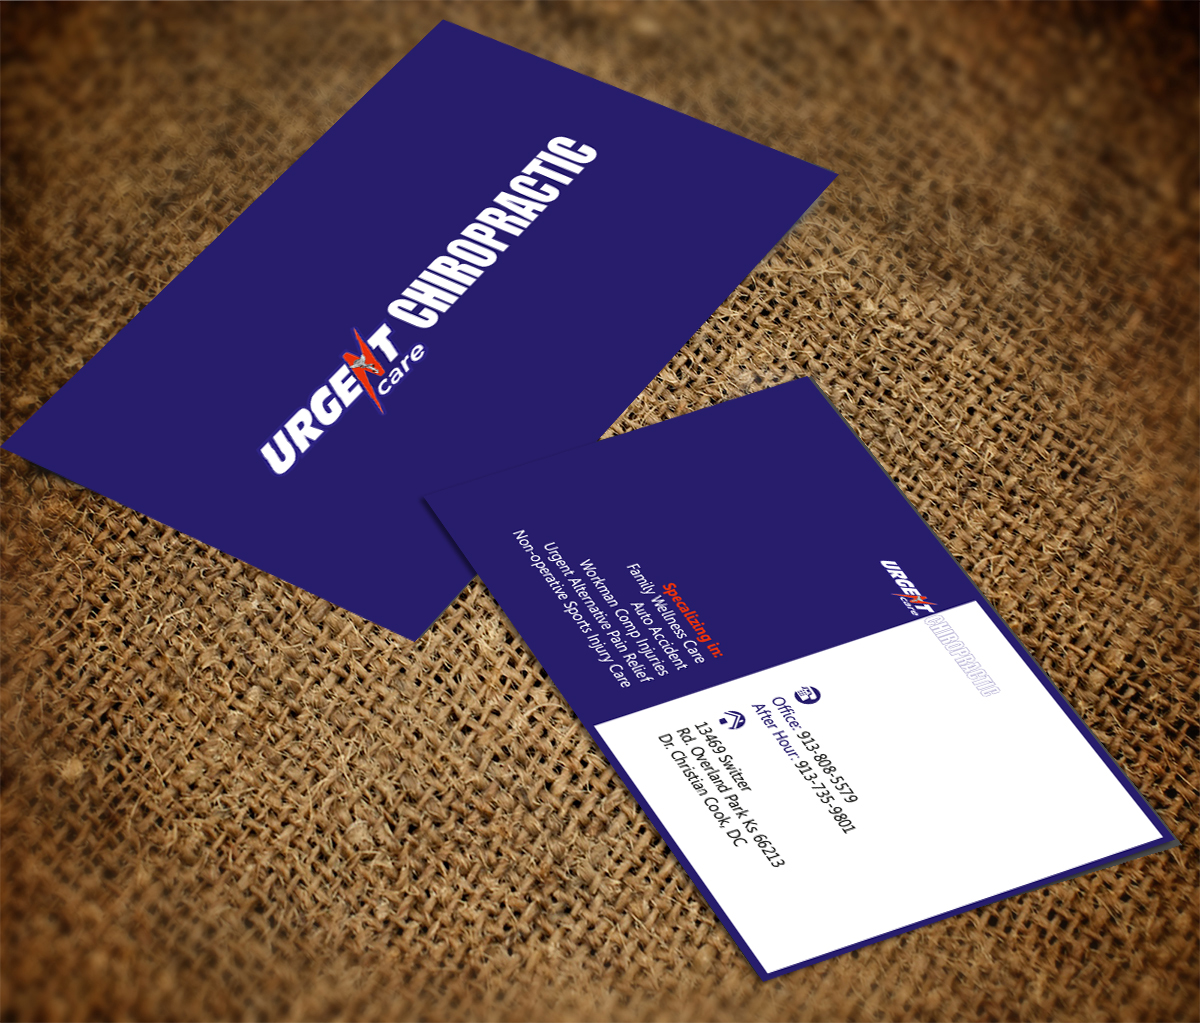 Christian Business Card Design for a Company by Bielka design ...